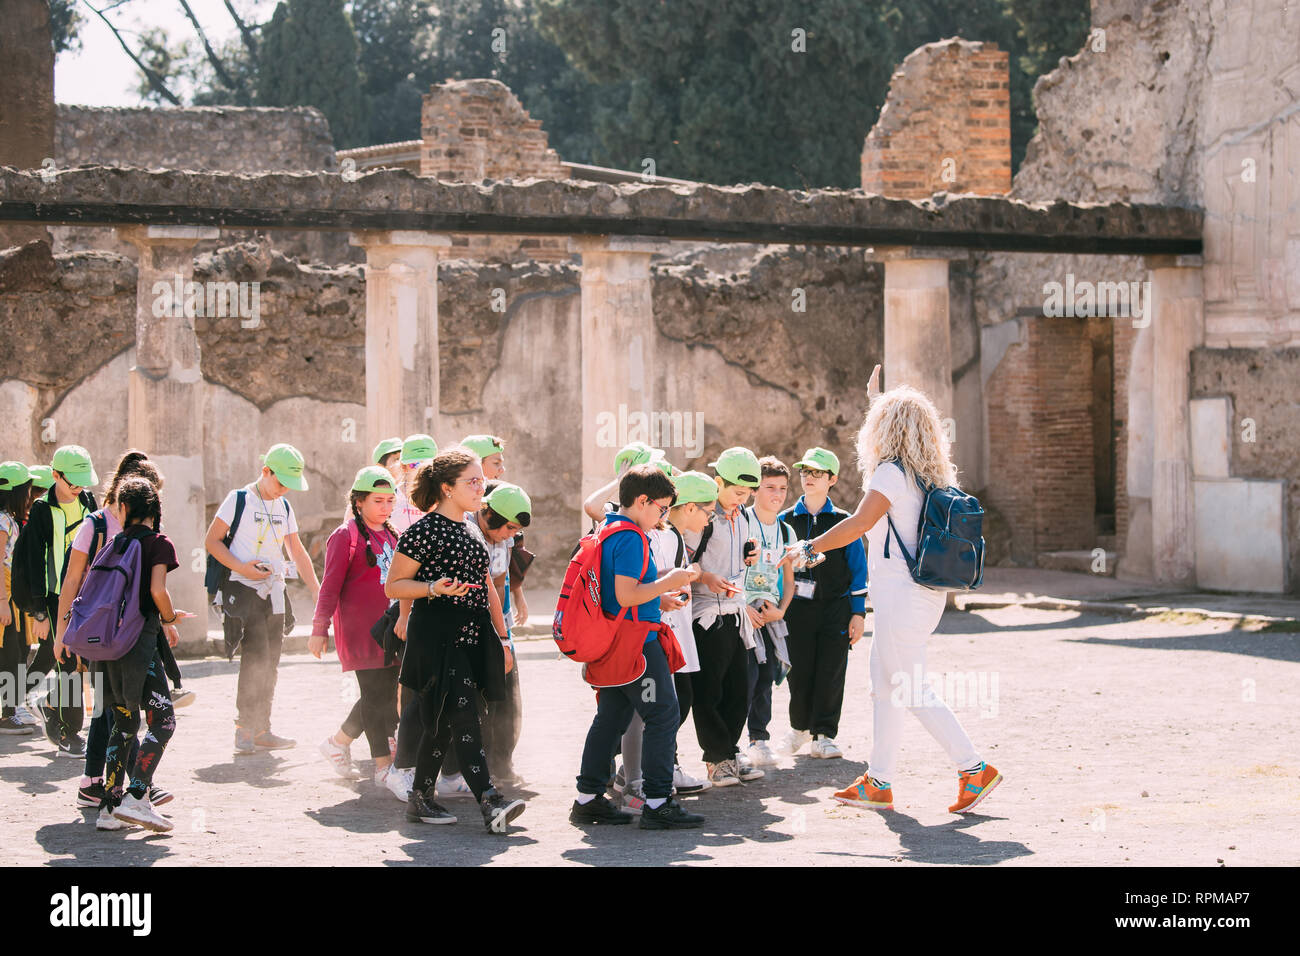 Pompeii, Italy - October 18, 2018: Group Of Schoolchildren Walking On Excursions Near Remains Of Ancient Building In Sunny Day - Stock Image